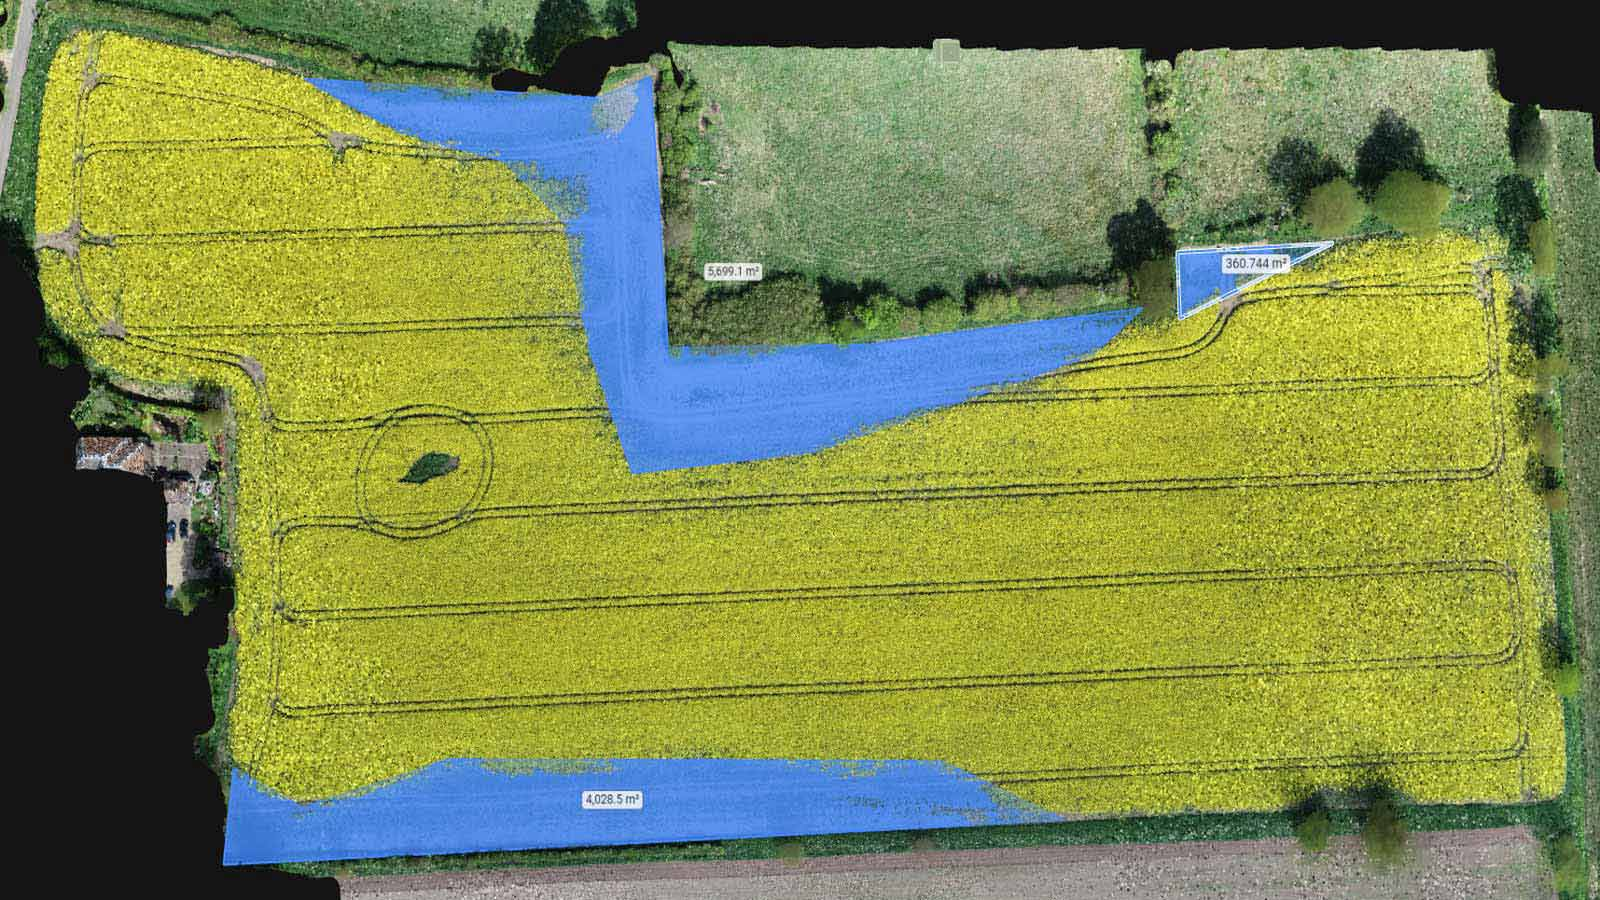 Bird damage in a crop field mapped with drones and precision agriculture